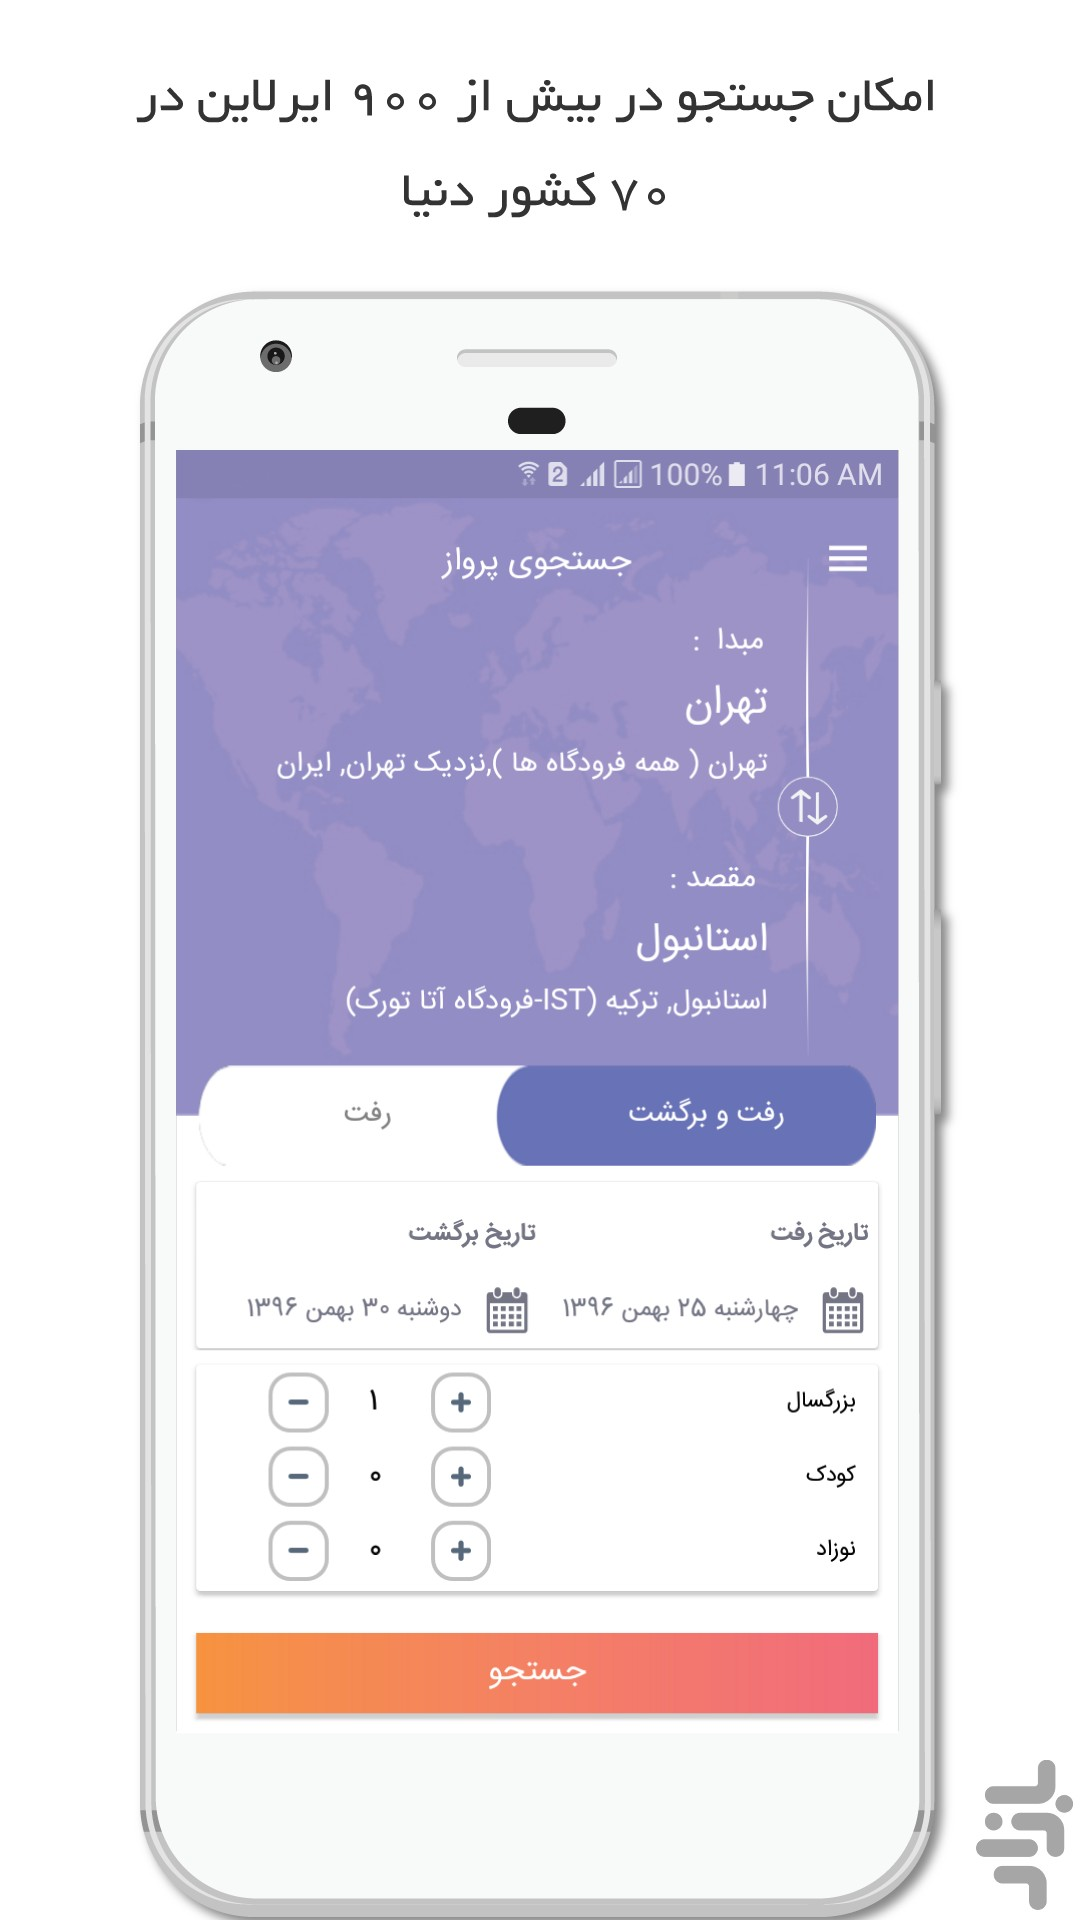 الی گشت screenshot